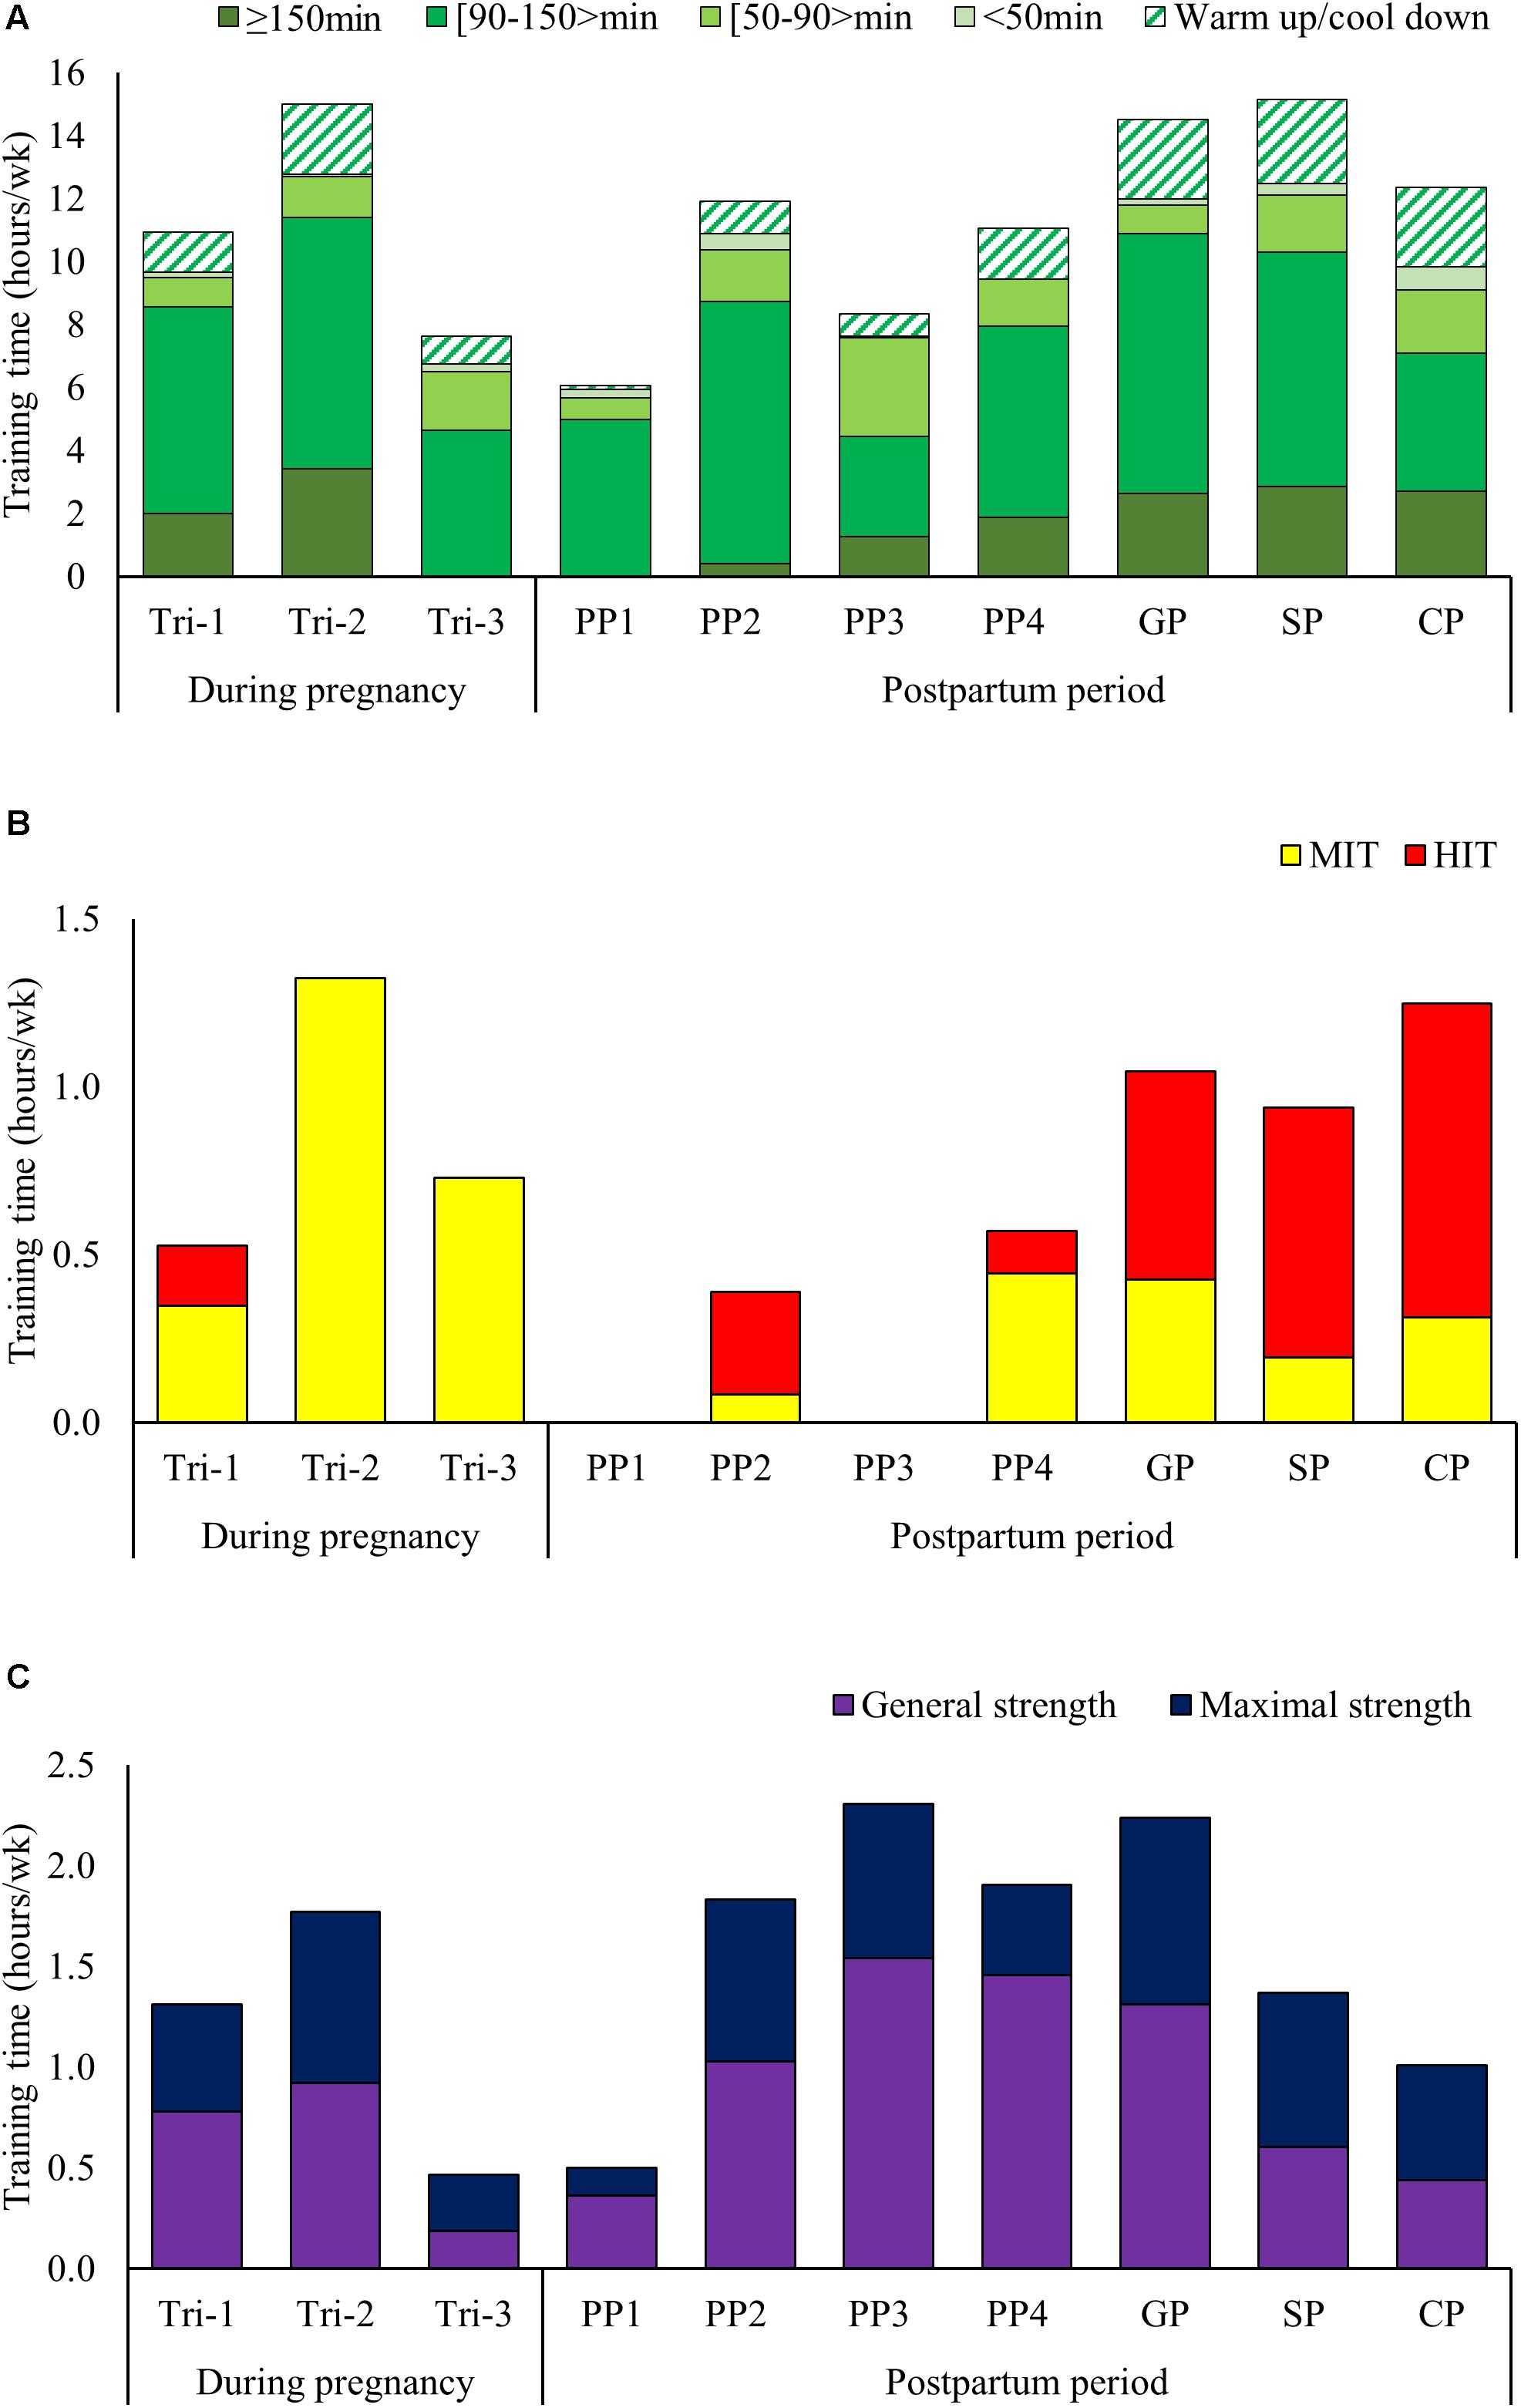 Frontiers | Training Characteristics During Pregnancy and